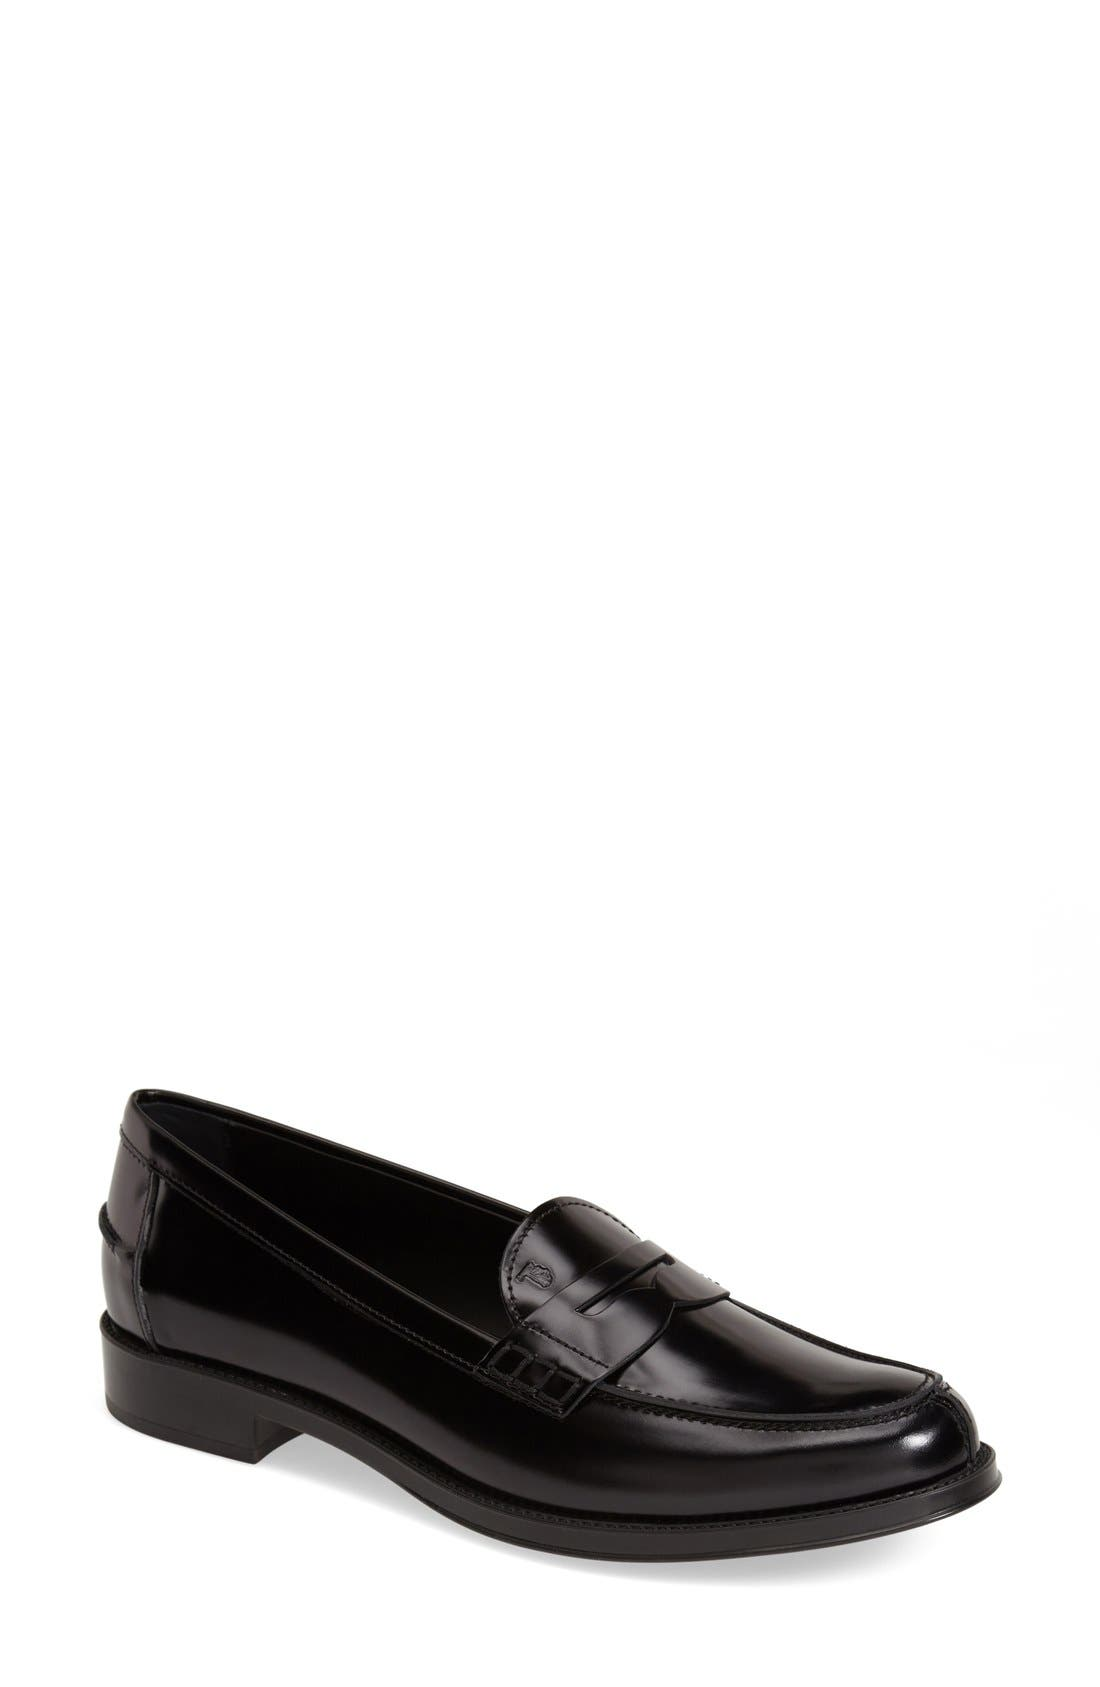 Penny Loafer,                             Main thumbnail 1, color,                             BLACK LEATHER